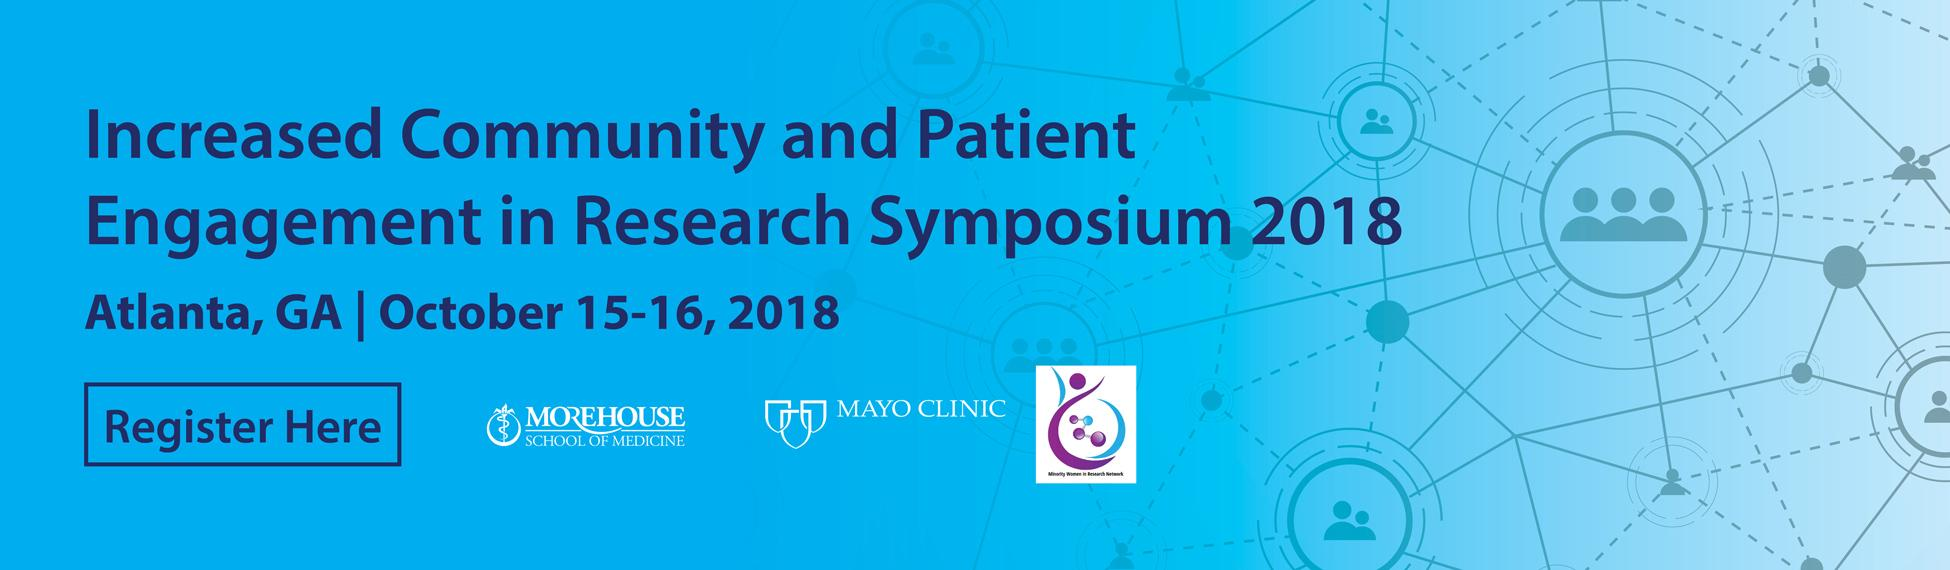 Register for Increased Community and Patient Engagement Symposium 2018